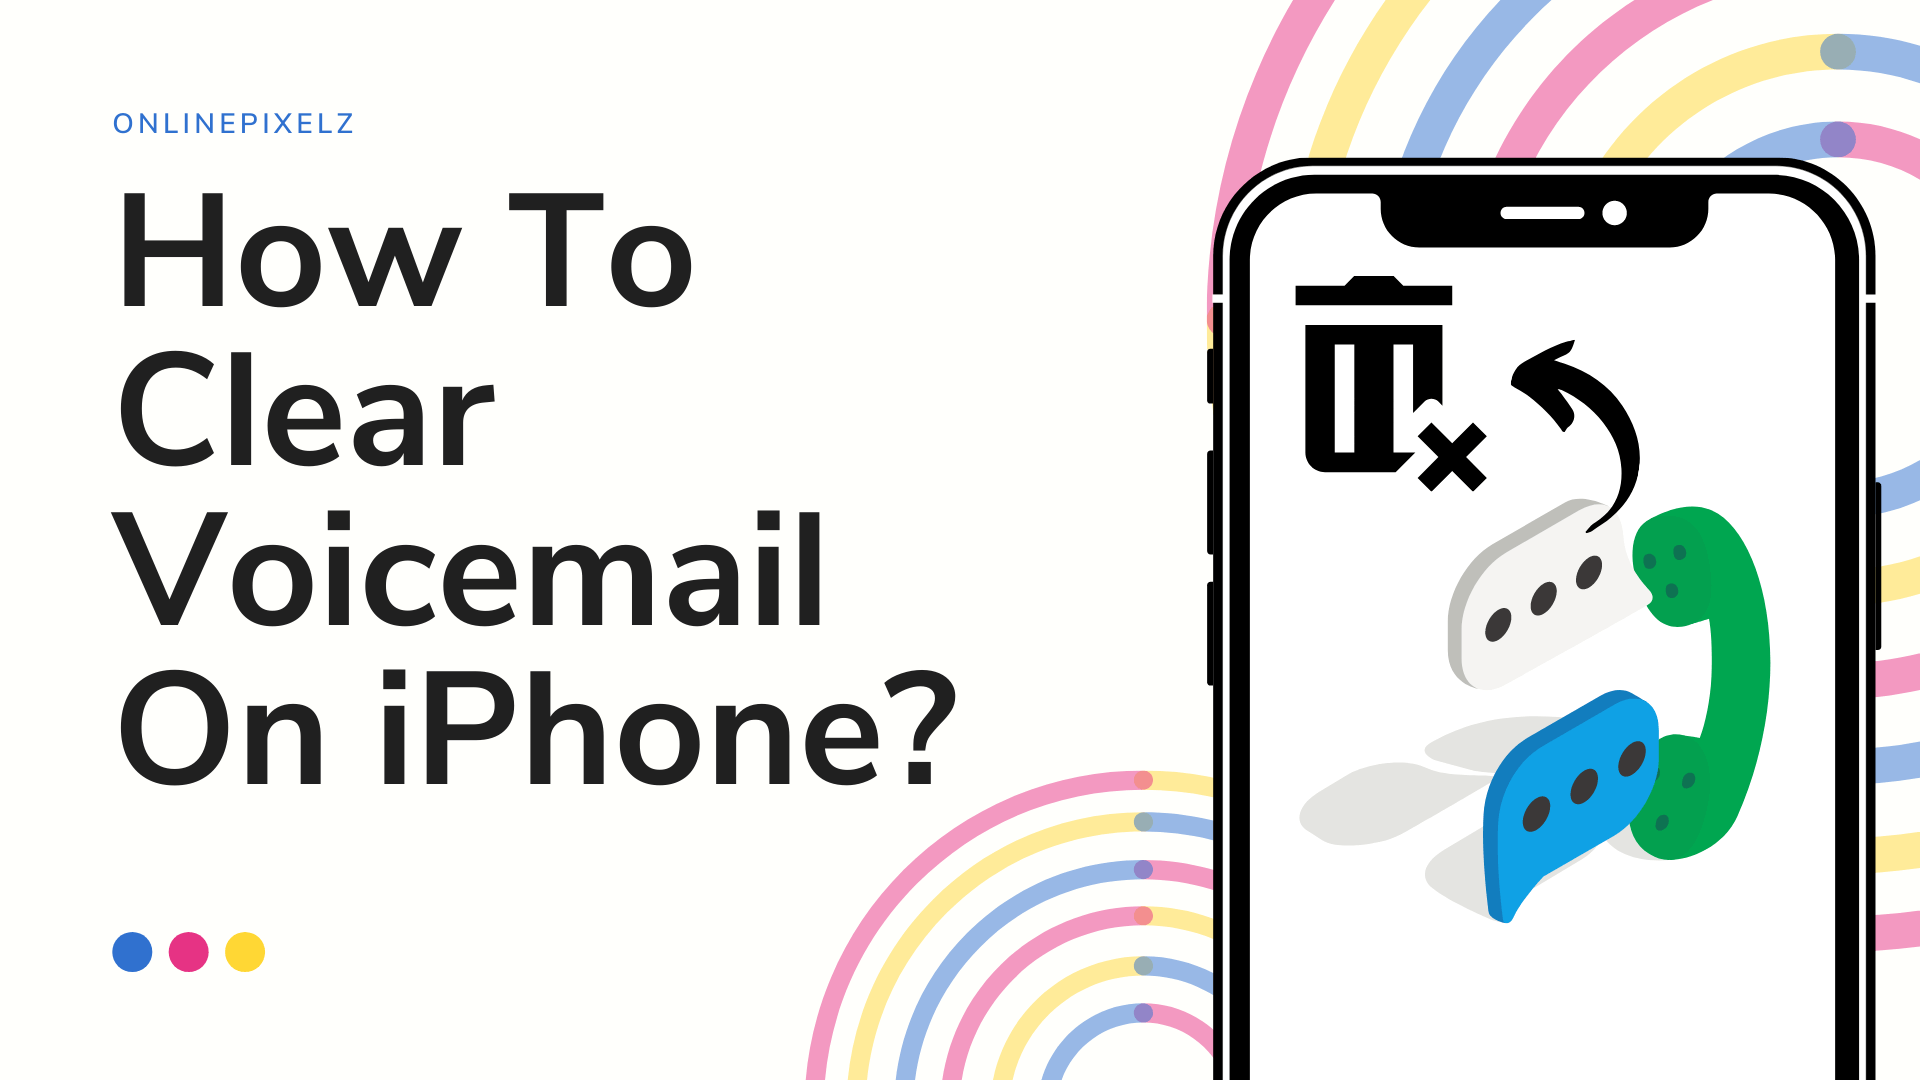 How To Clear Voicemail On iPhone